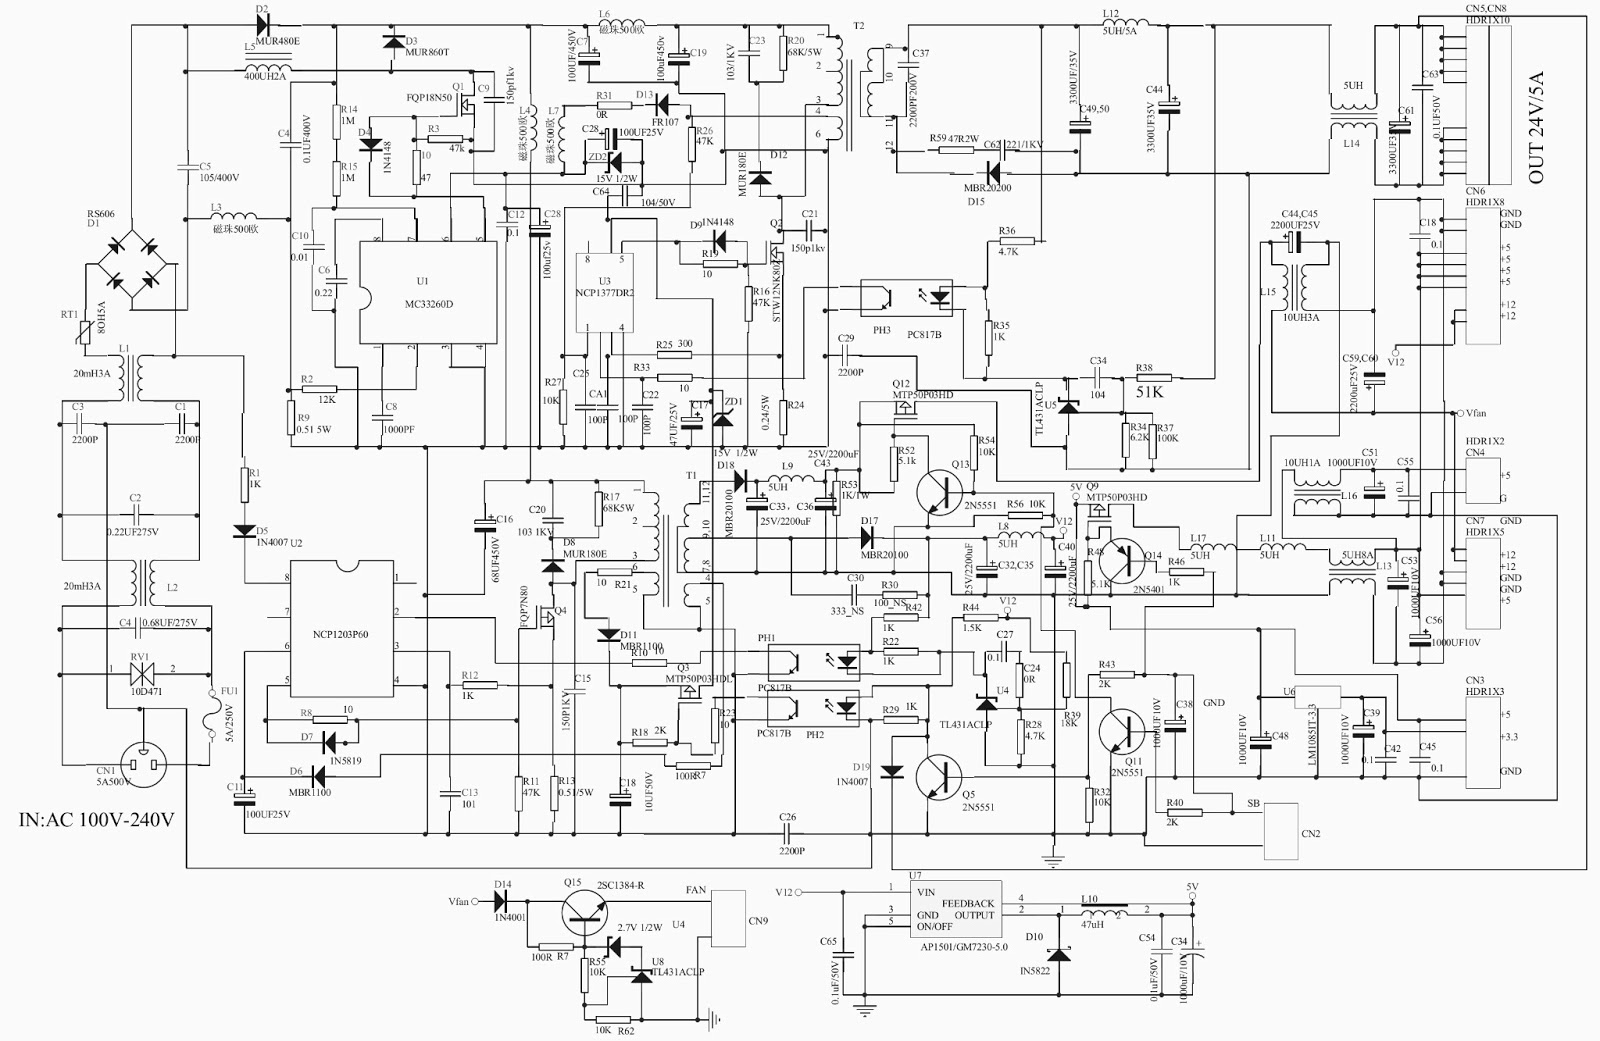 Videocon Tv Circuit Diagram Model No - Circuit Diagram Images